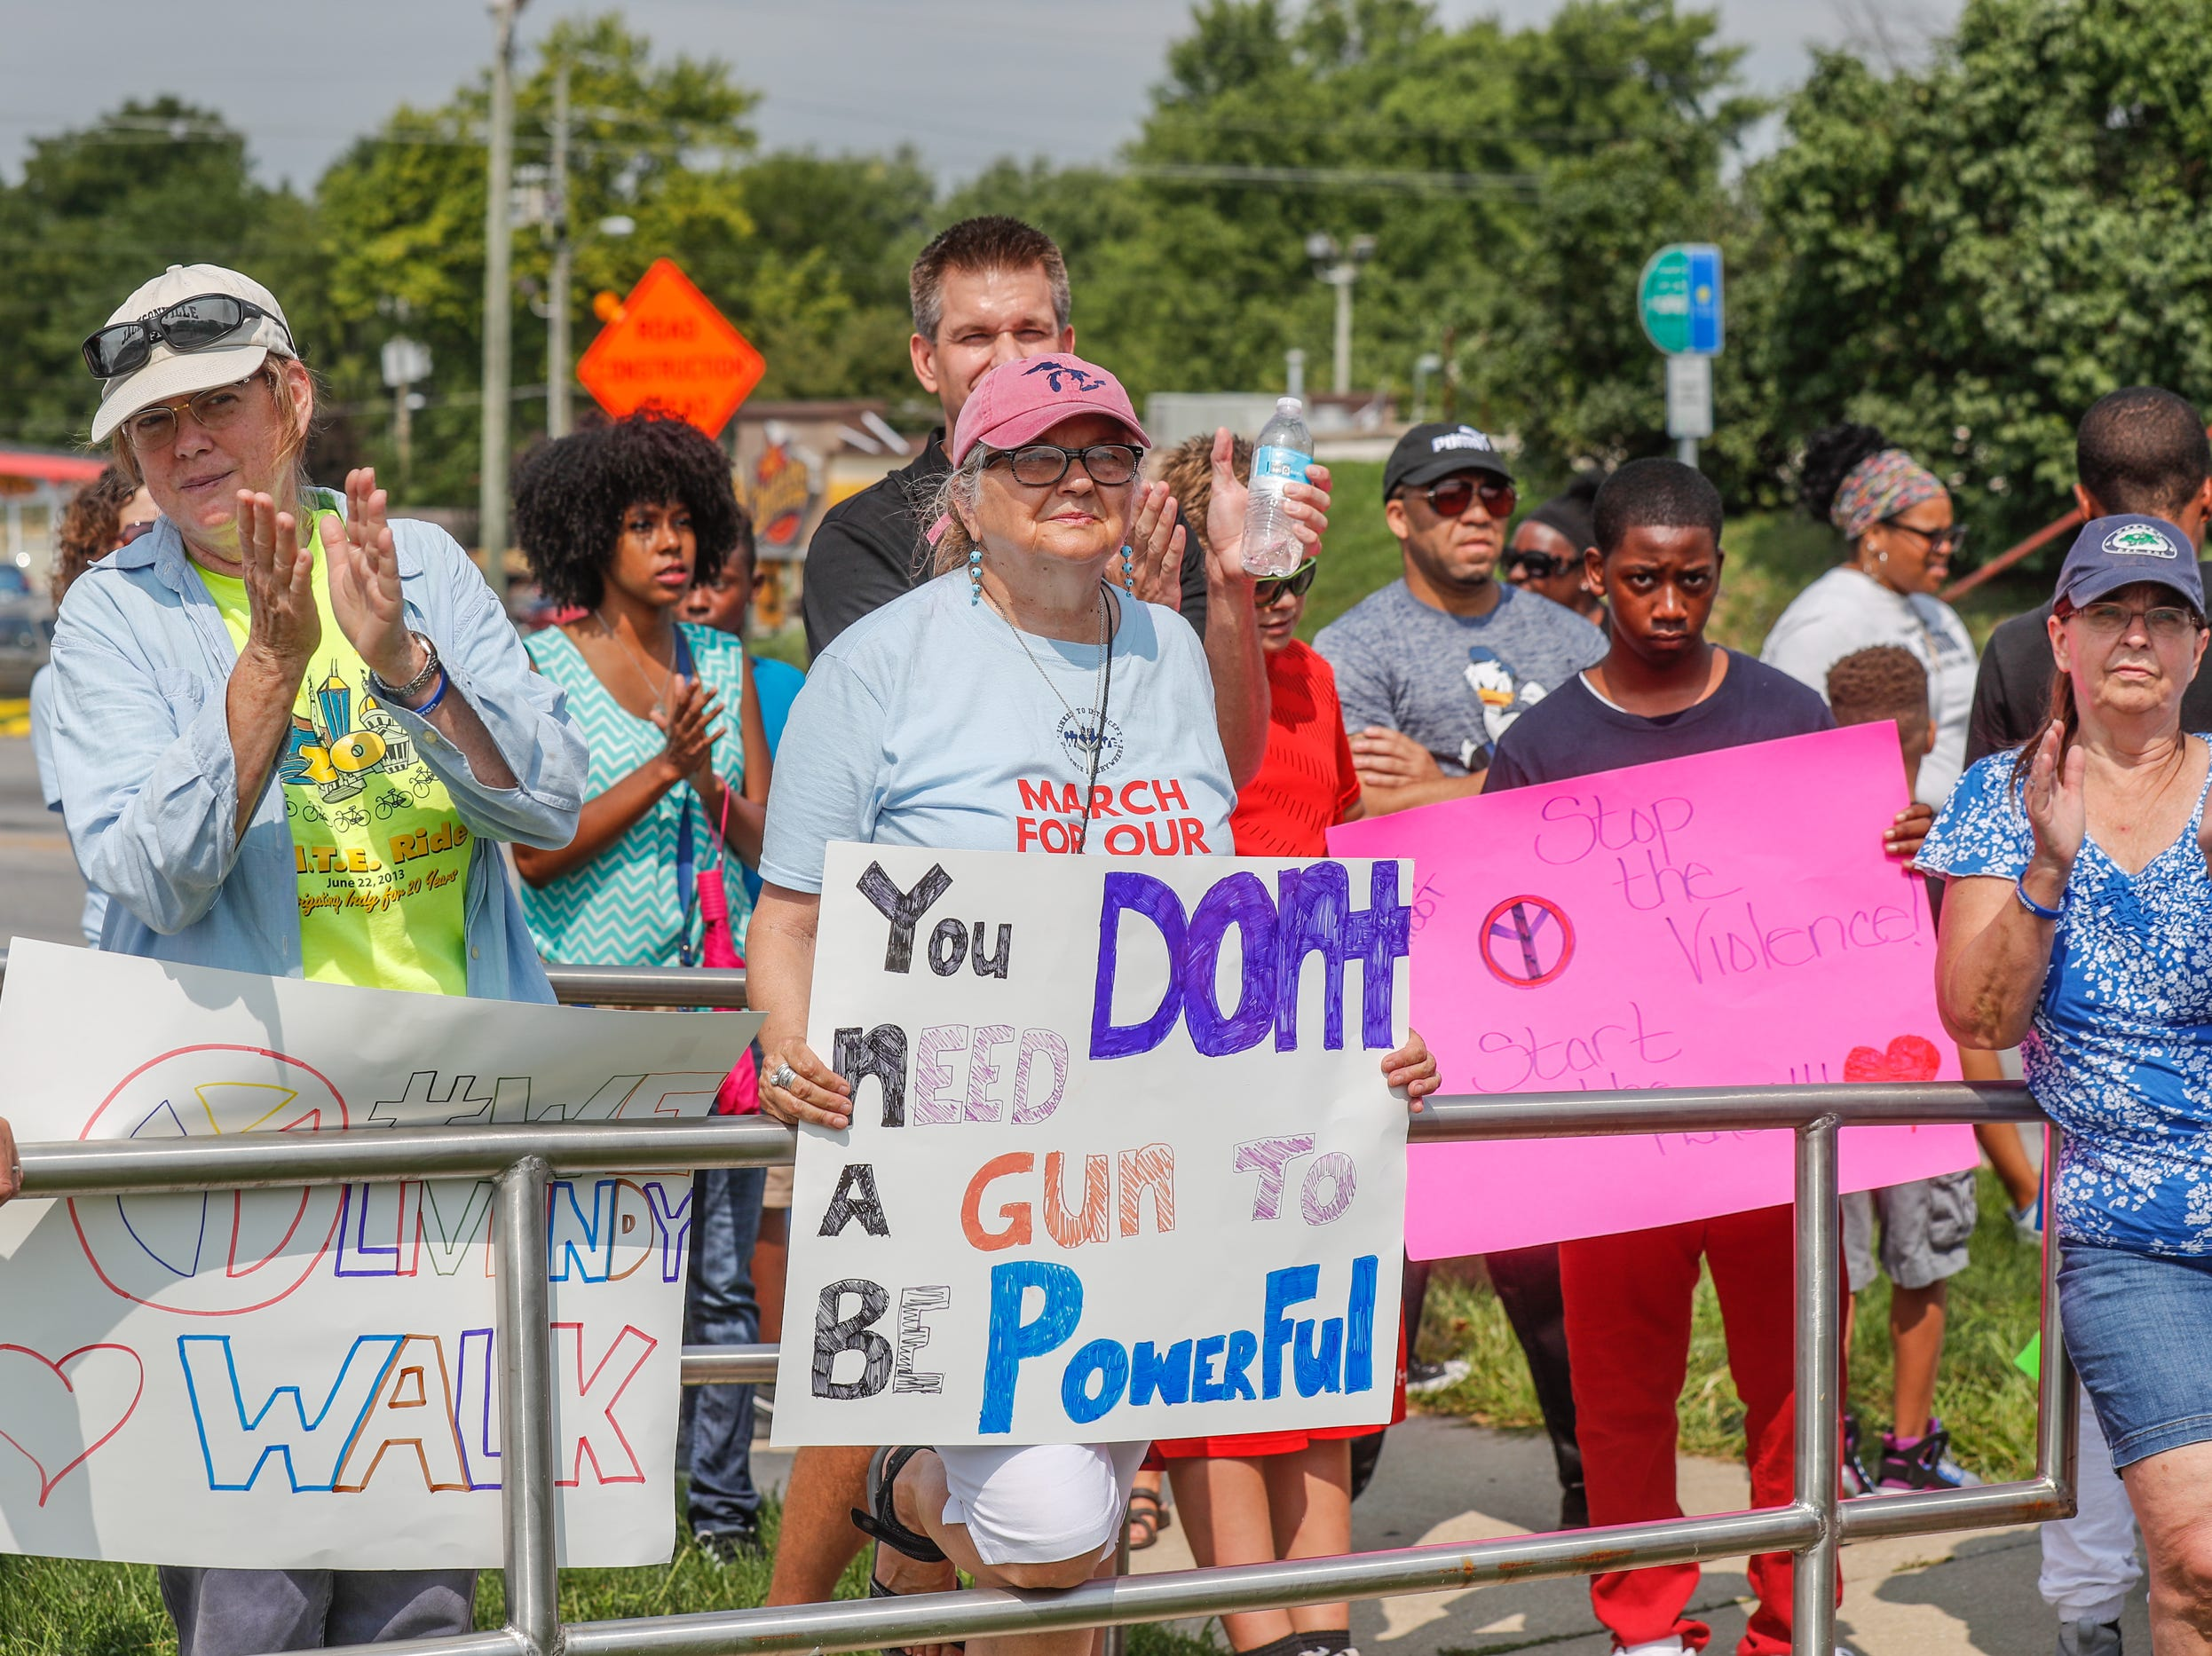 Members and supporters of 'We Live' stop for a prayer at the Marion County Juvenile Center during their second annual Peace Walk and community day to end youth violence at Washington Park on Saturday, Aug. 11, 2018. 'We Live,' which stands for 'Linked To Intercept Violence' was started by students from Warren Central High School in Indianapolis.